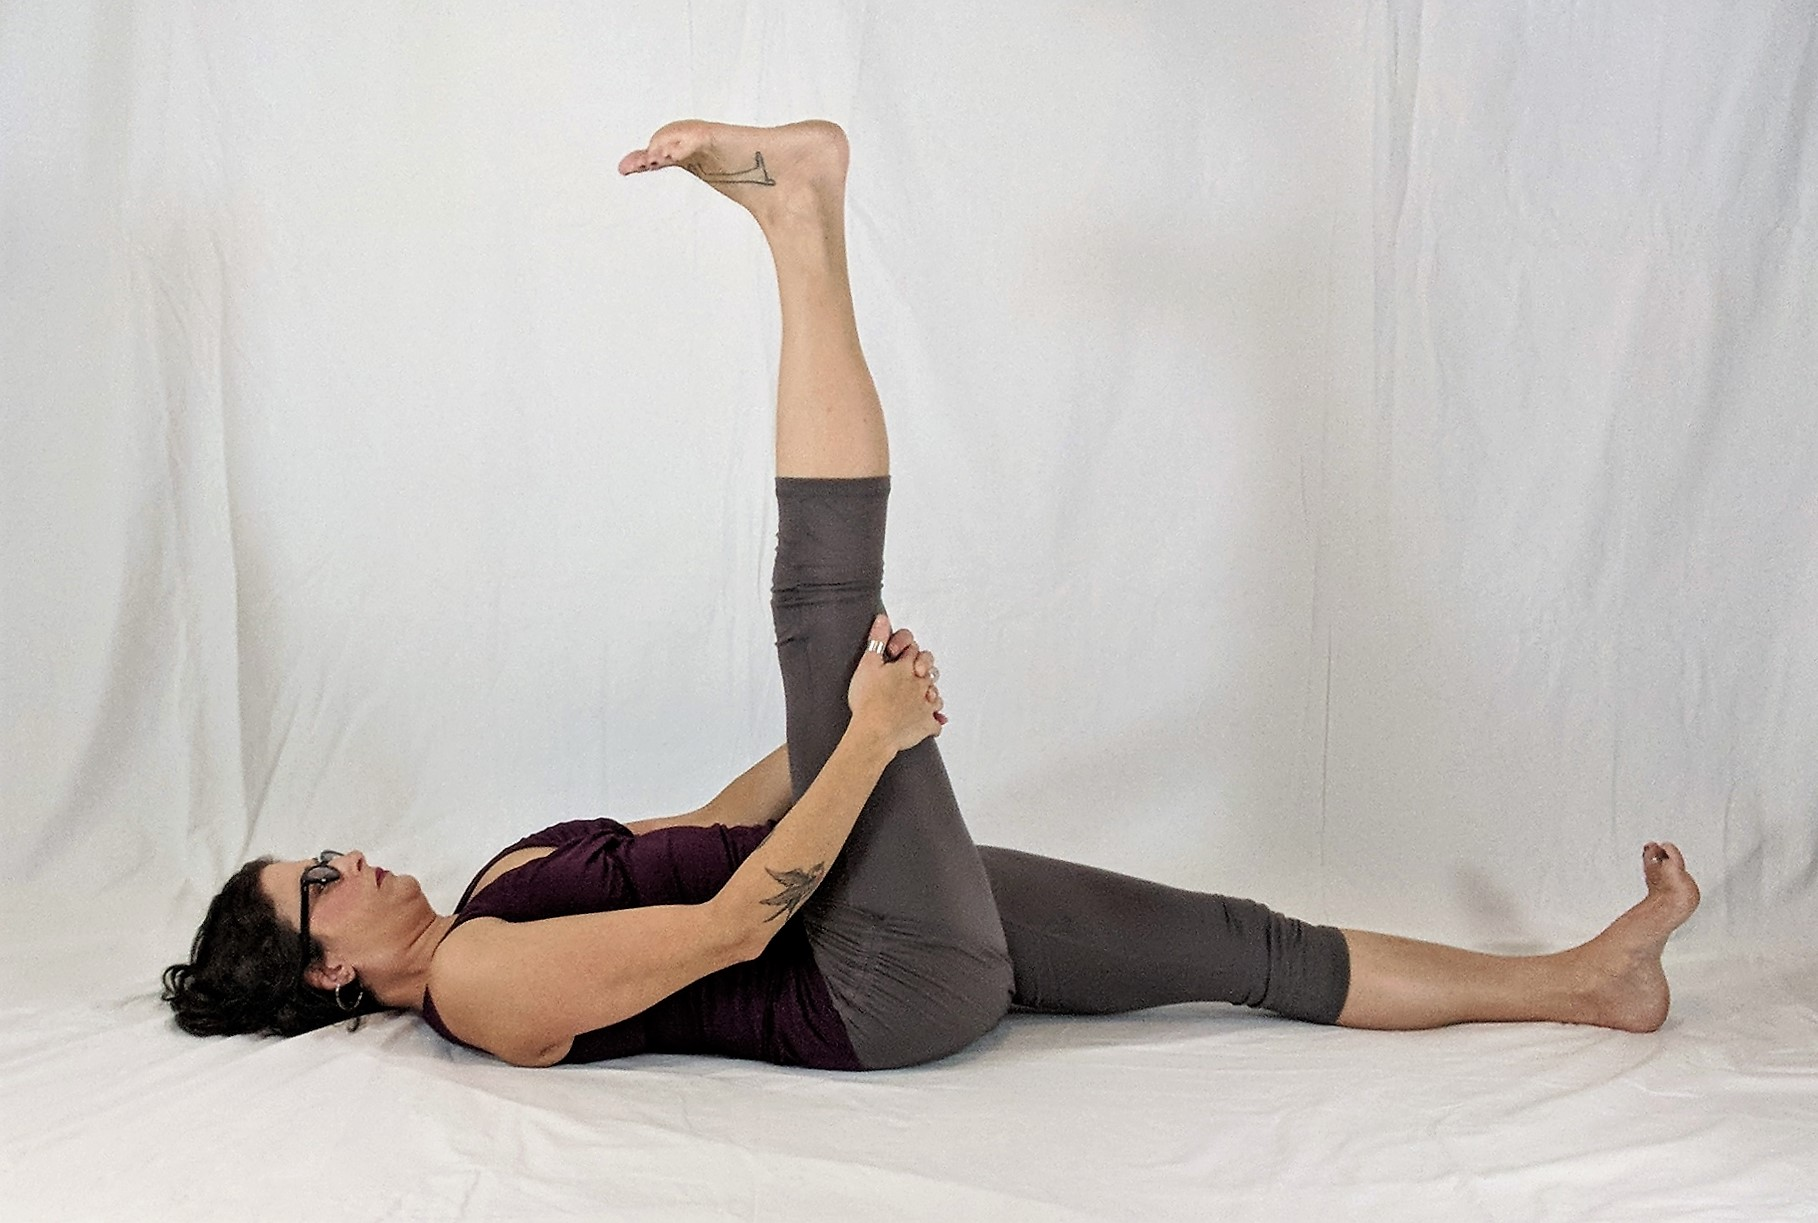 Reclining floor yoga pose with one leg raised